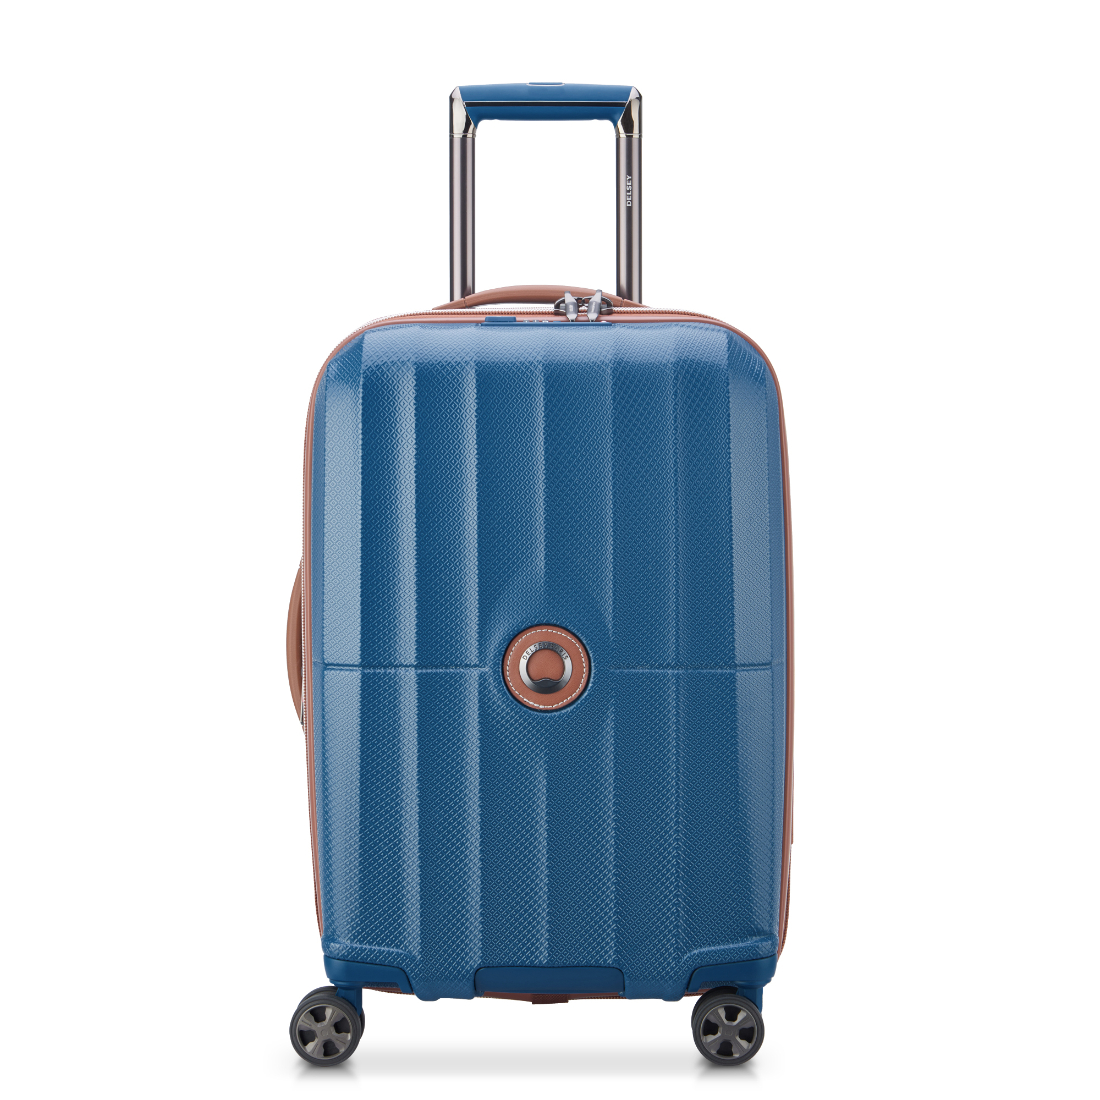 DELSEY luggage ST TROPEZ collection in blue with brown vegan leather trim